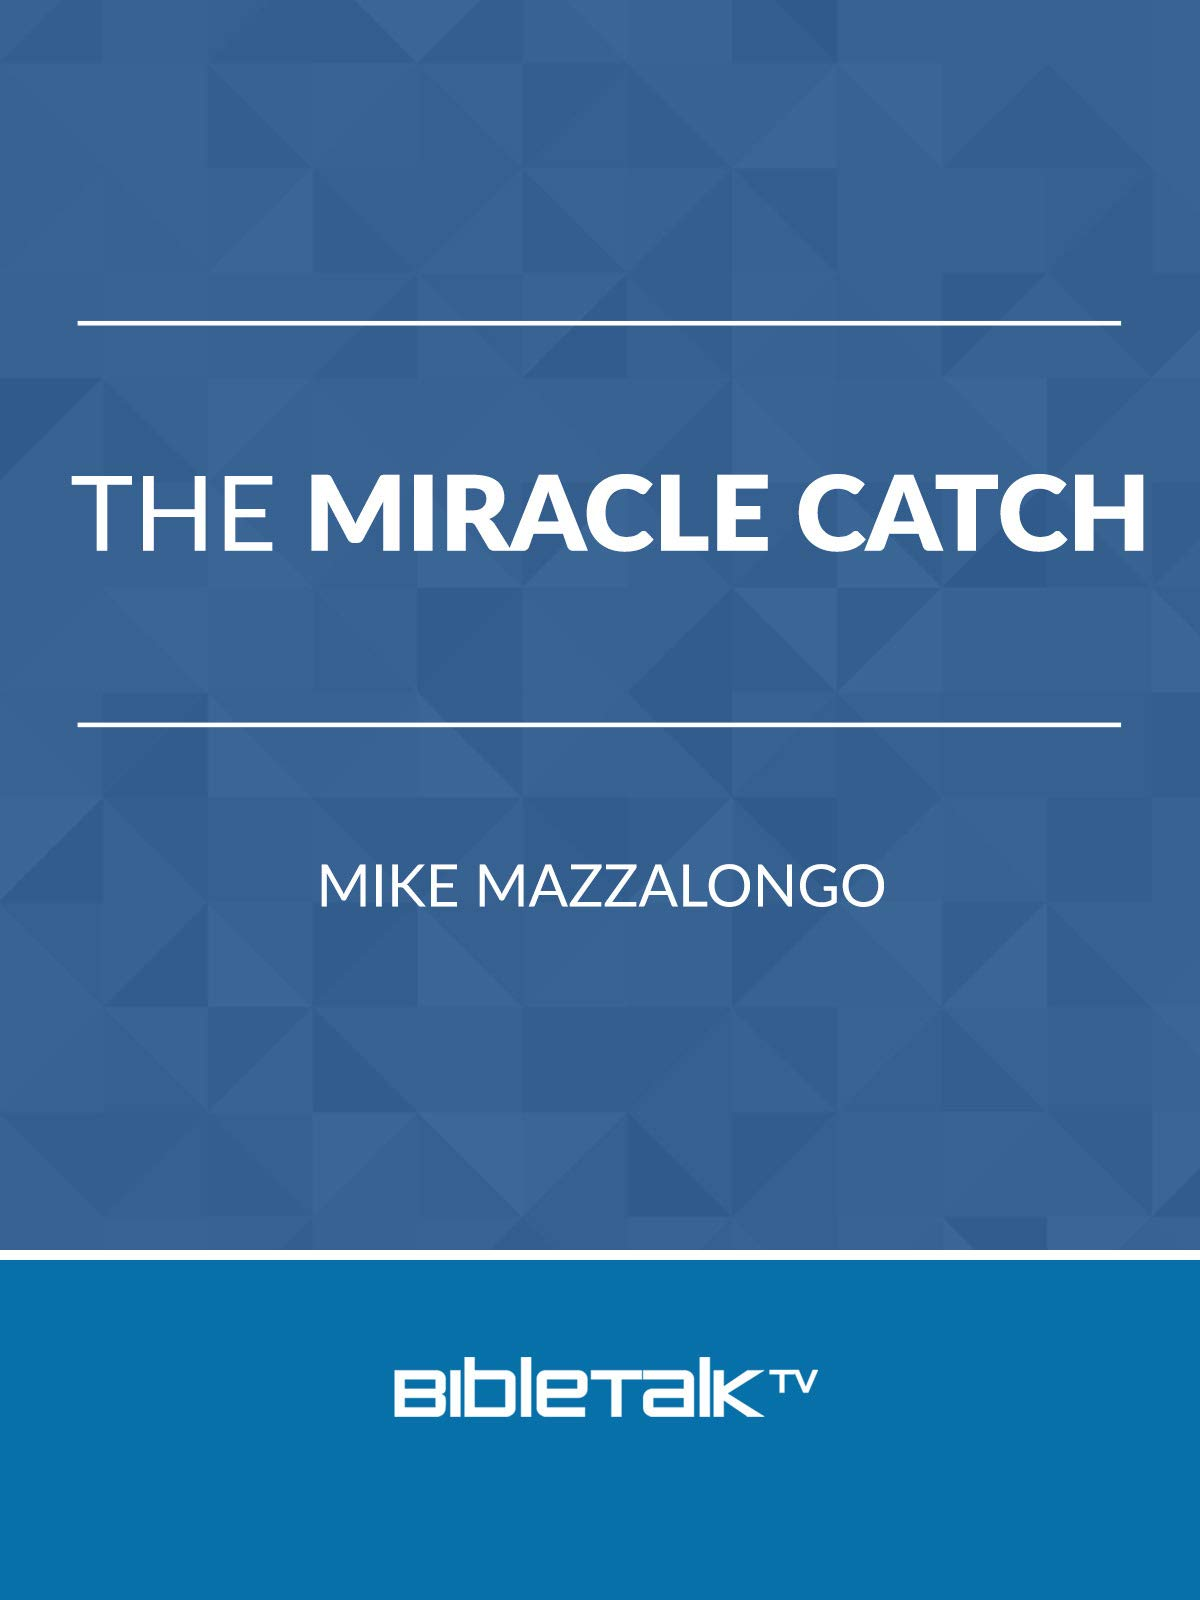 The Miracle Catch